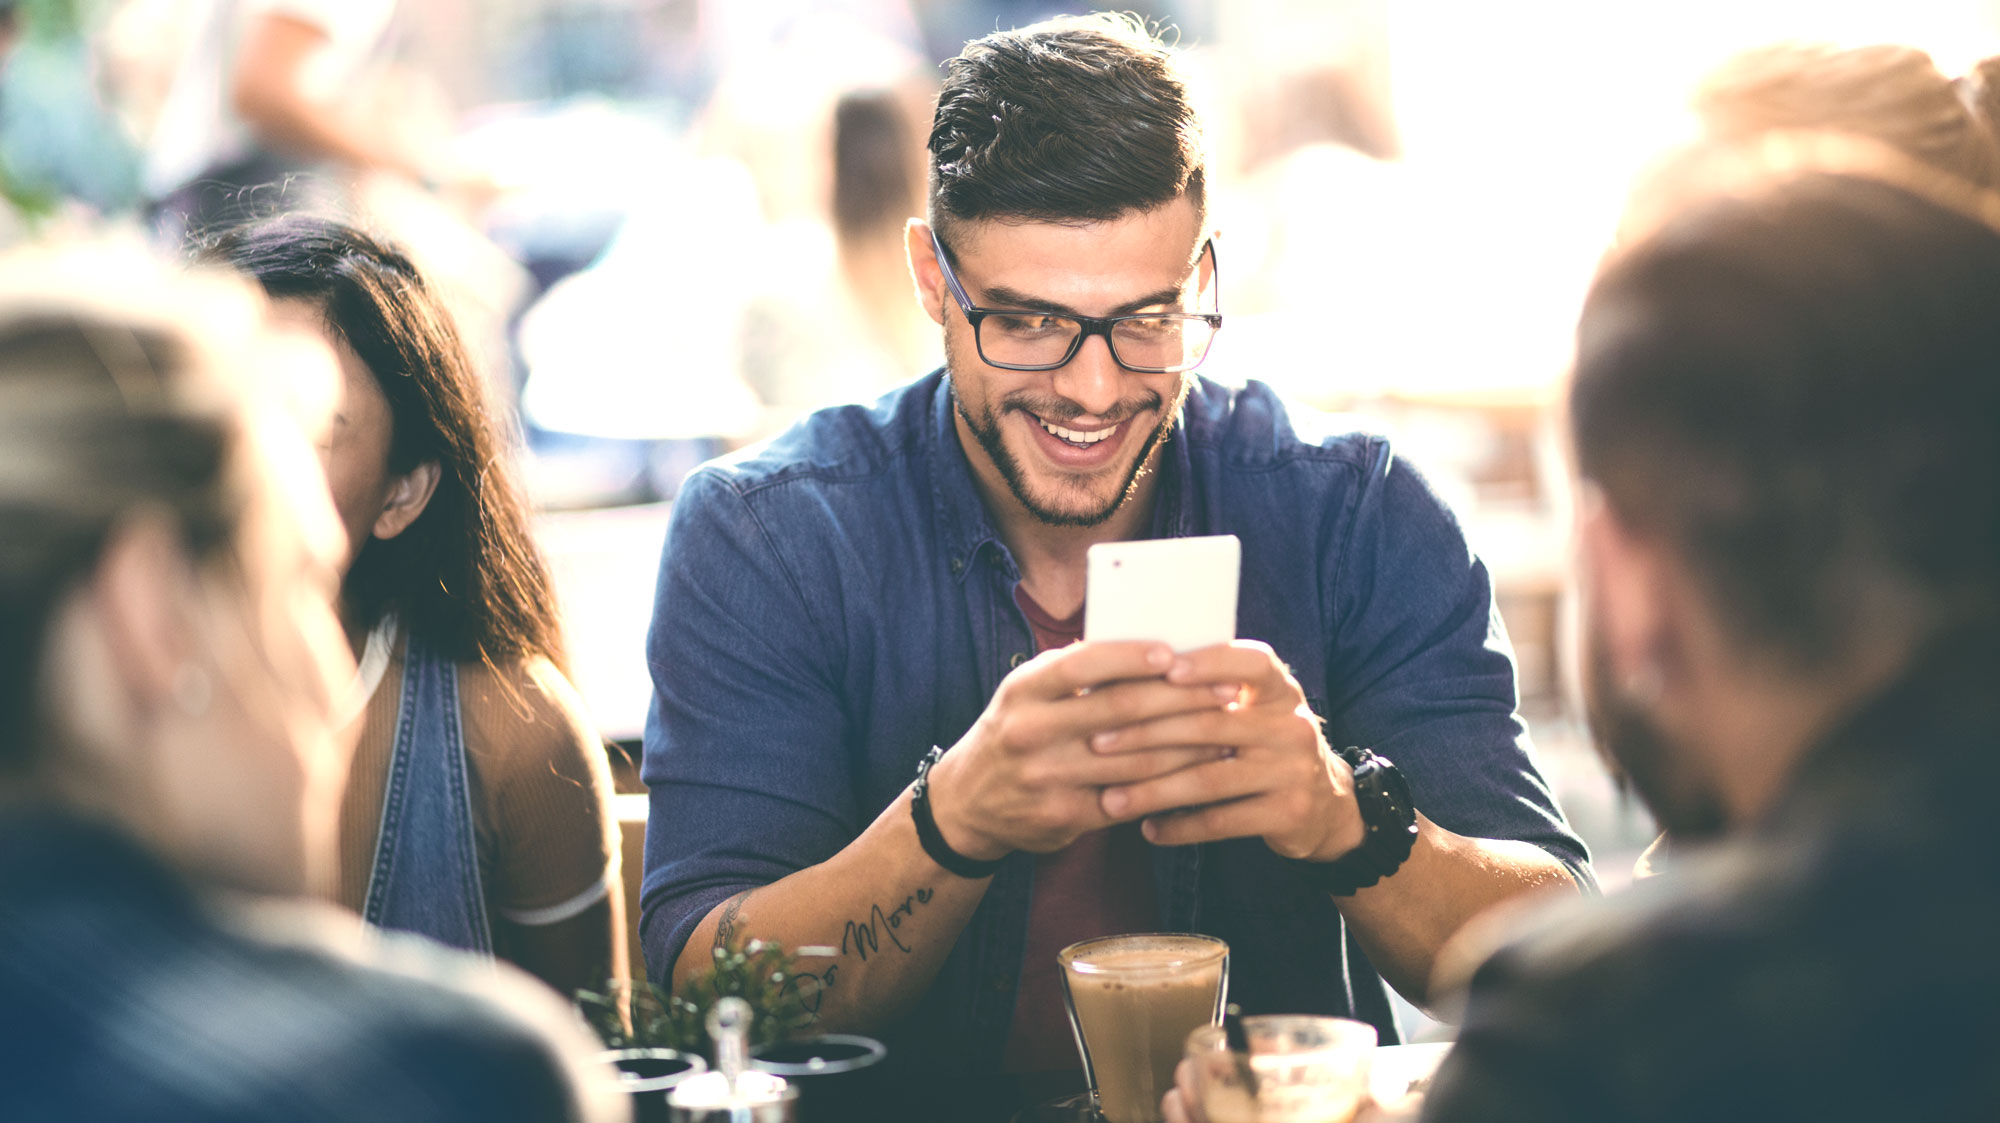 Man using Zelle on Smartphone sitting with friends